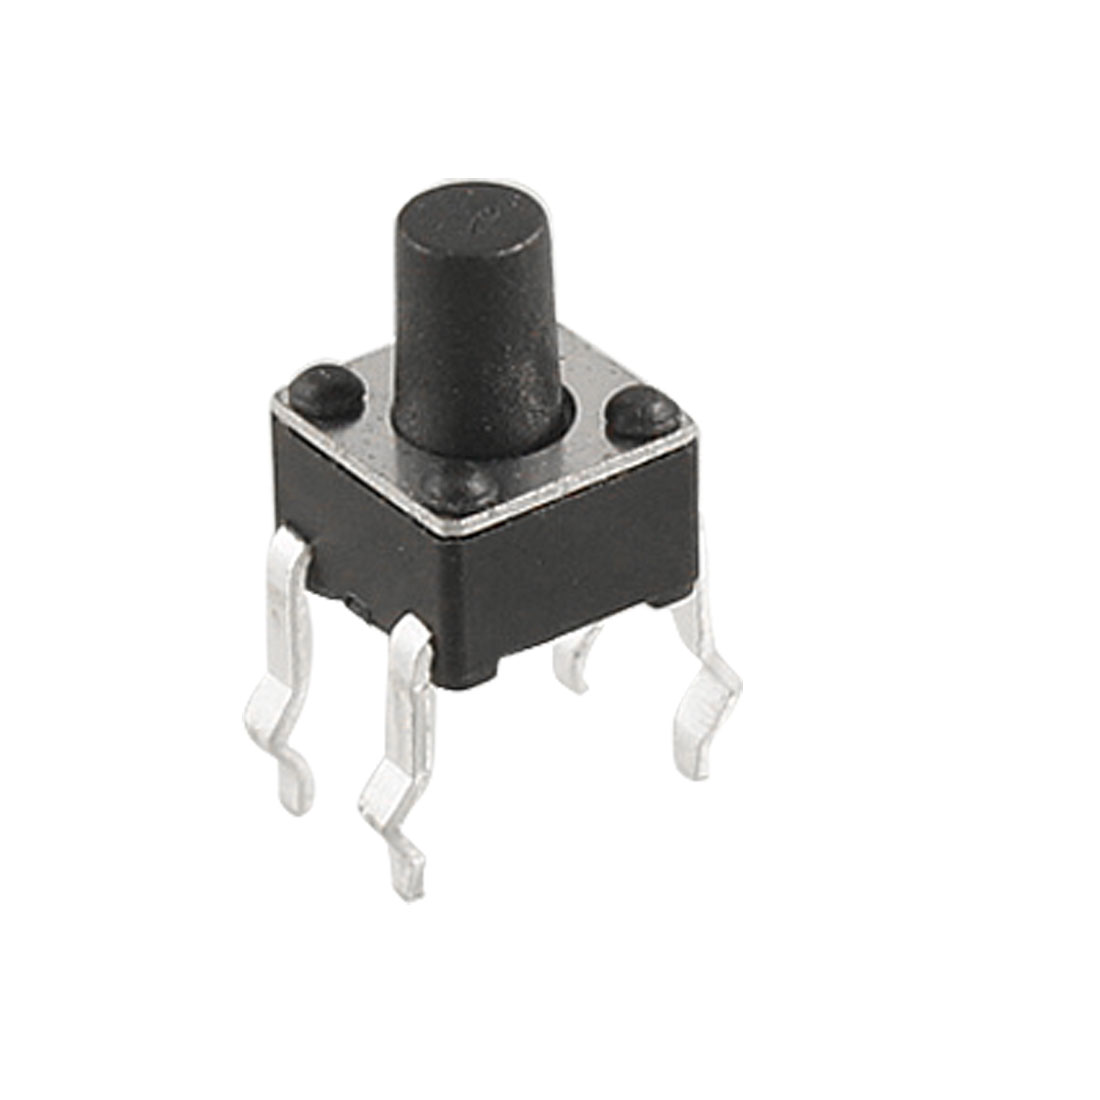 10 Pcs Black Round Push Button Momentary Tact Switch 4 x 4 x 6mm